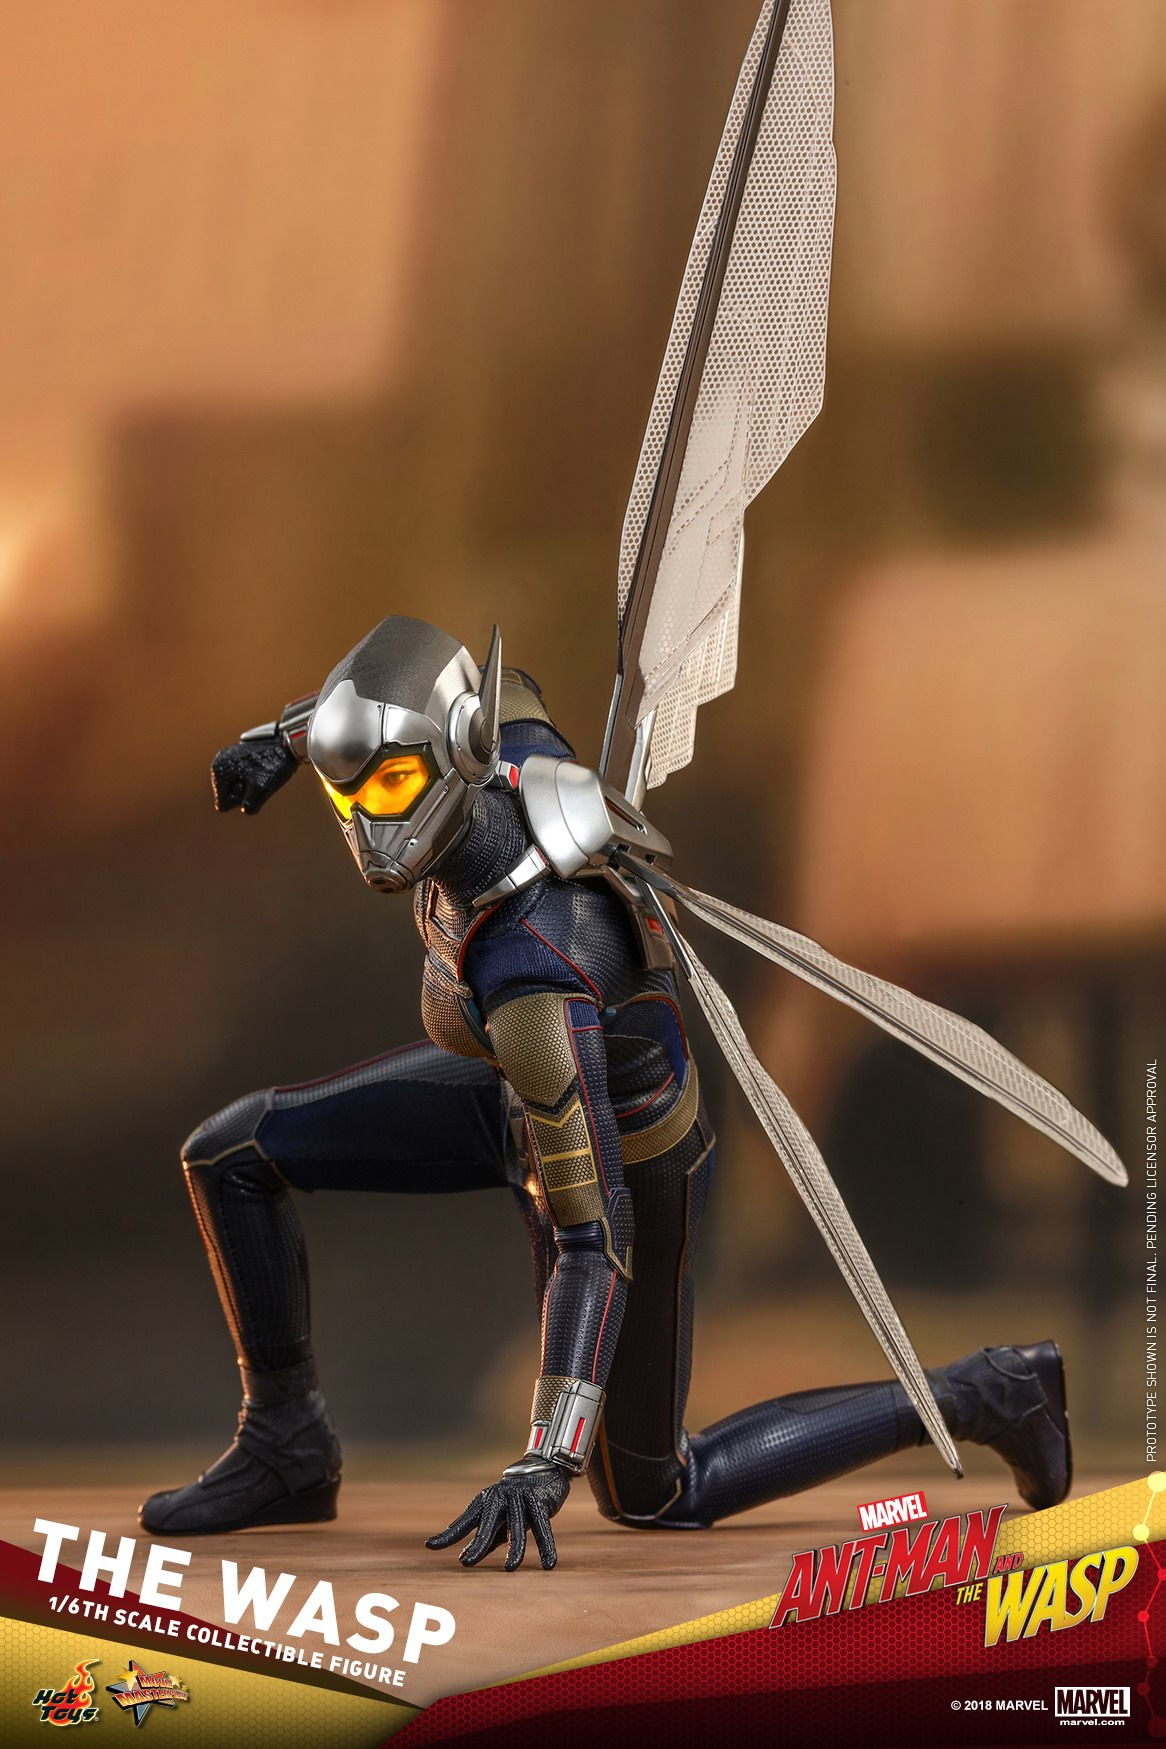 Hot-Toys-Ant-Man-and-The-Wasp-The-Wasp-Collectible-Figure_PR14.jpg